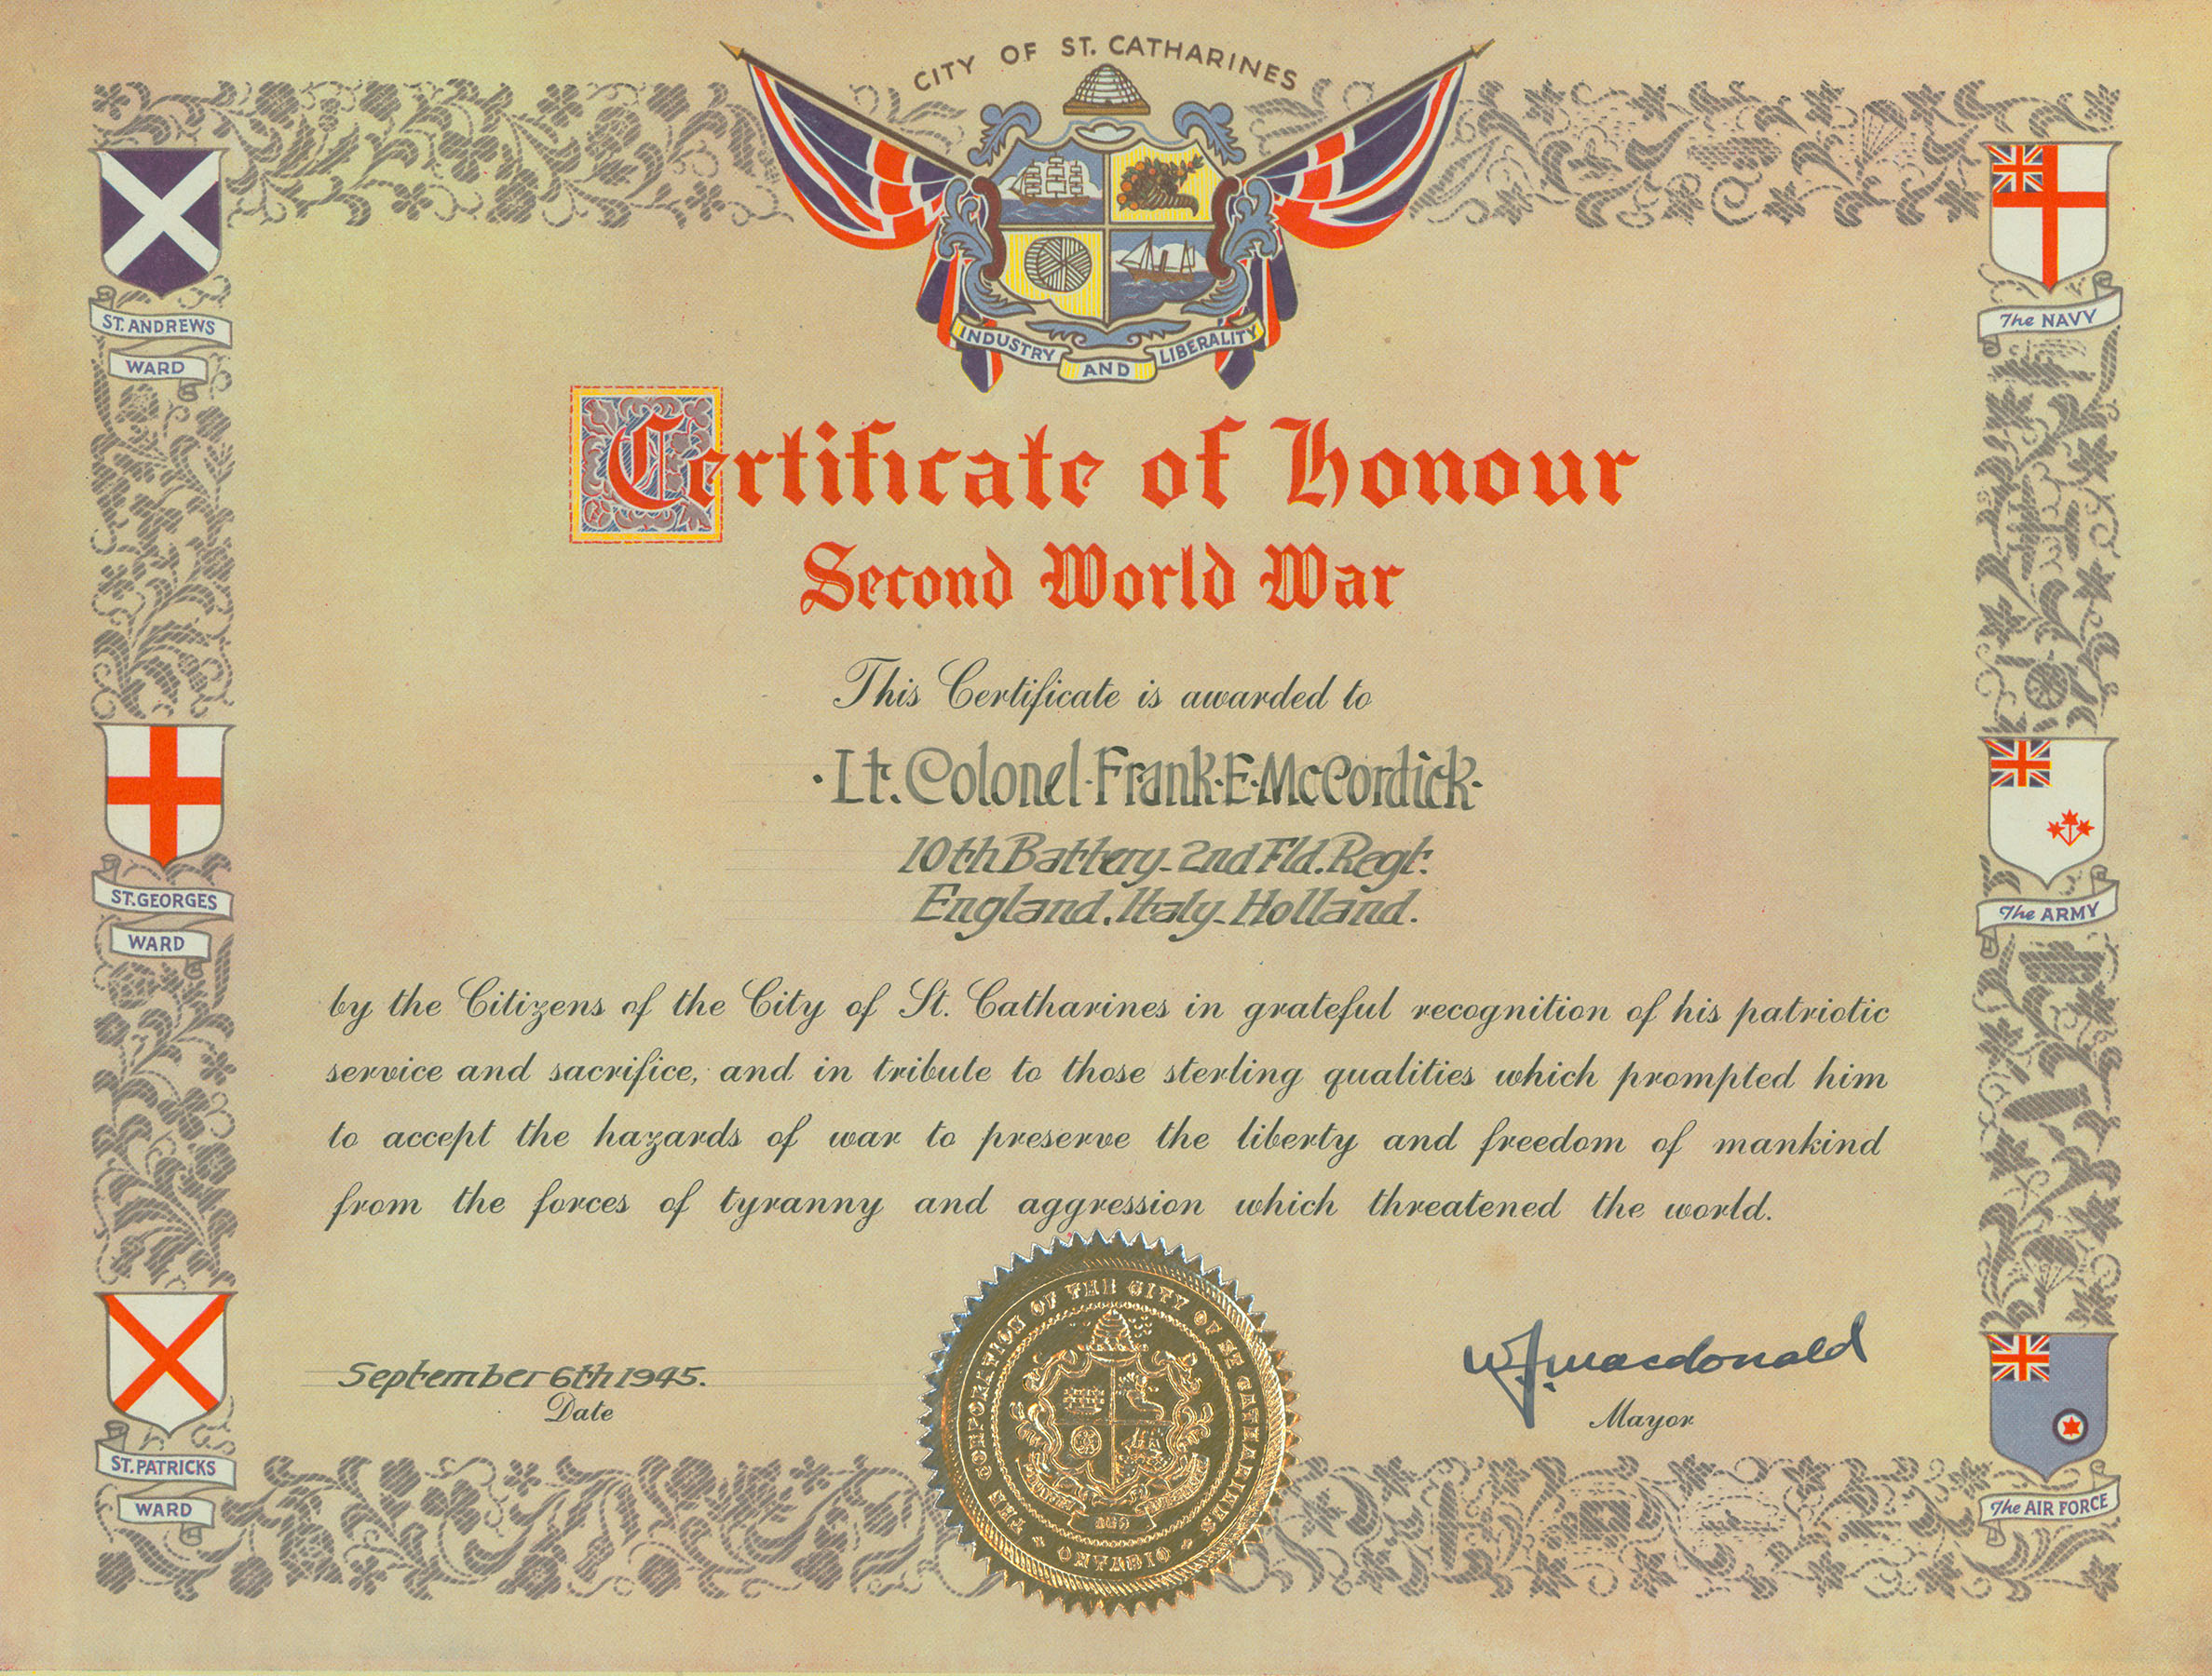 Certificate of honour name certificate of honourg size 1055mb format jpeg image yadclub Choice Image